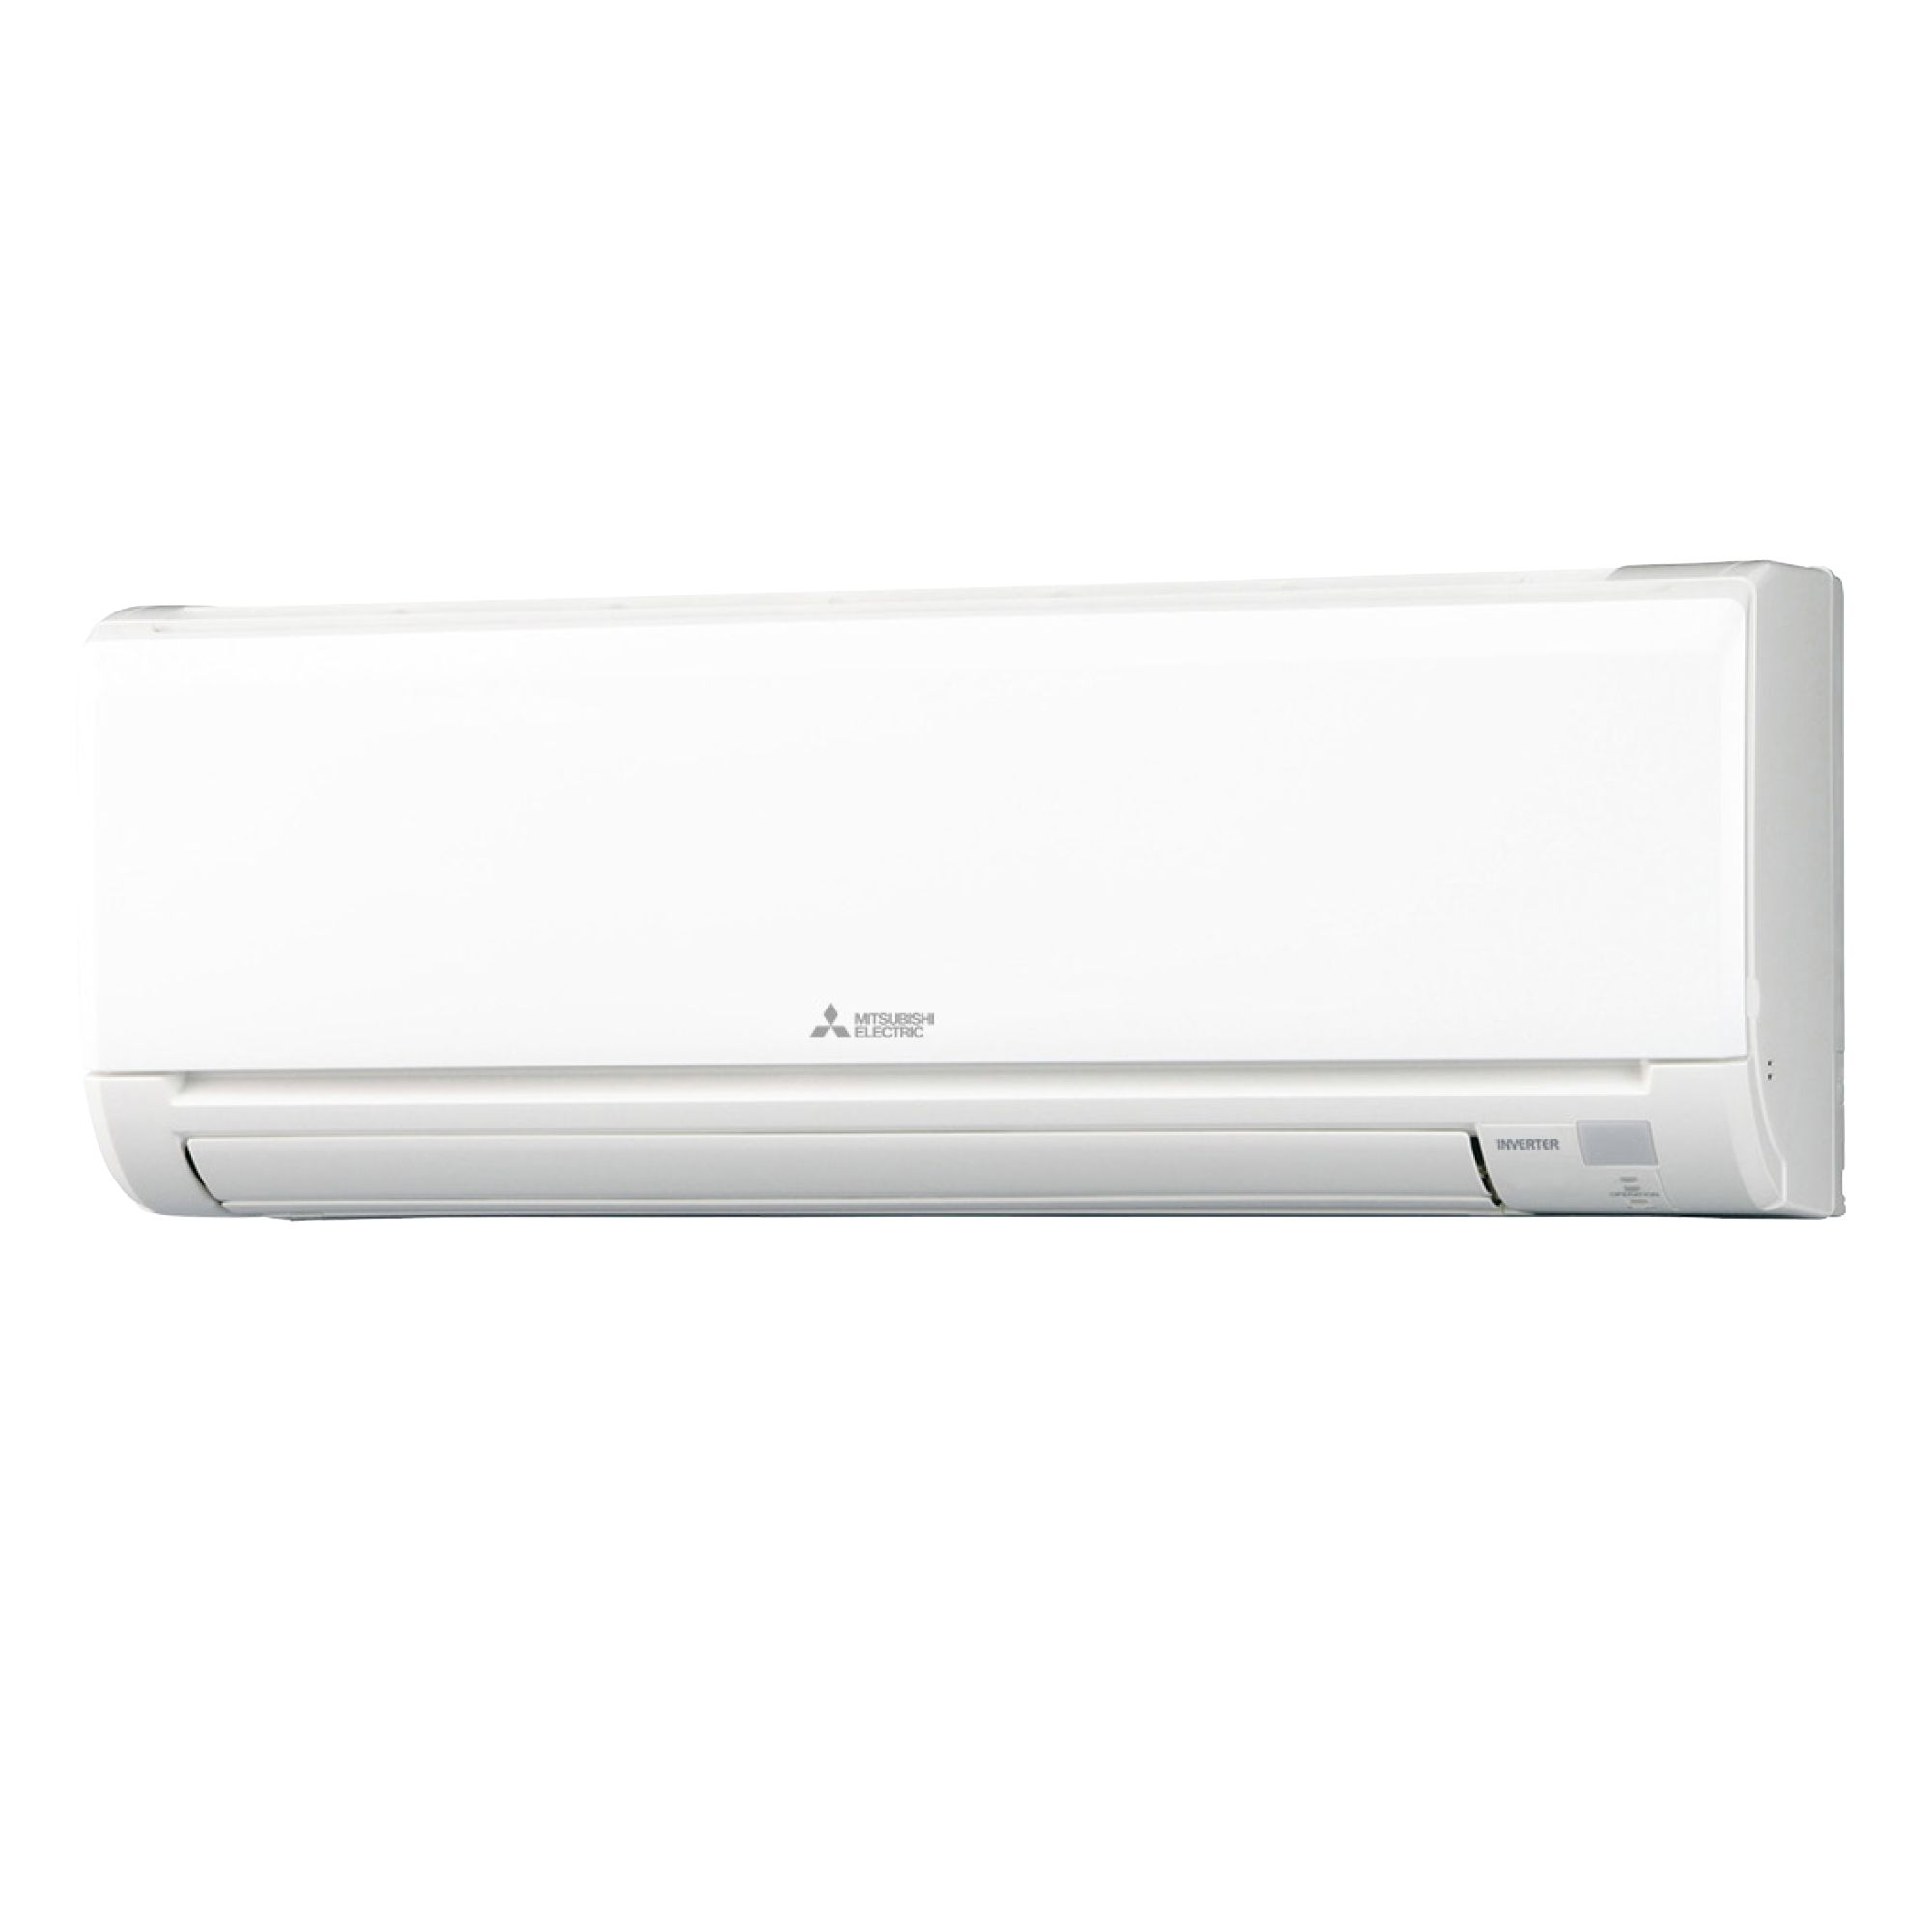 conditioner dp ductless kaussmann quality investment amazon canvas a large with protect heat your split pump high mini air by com cover